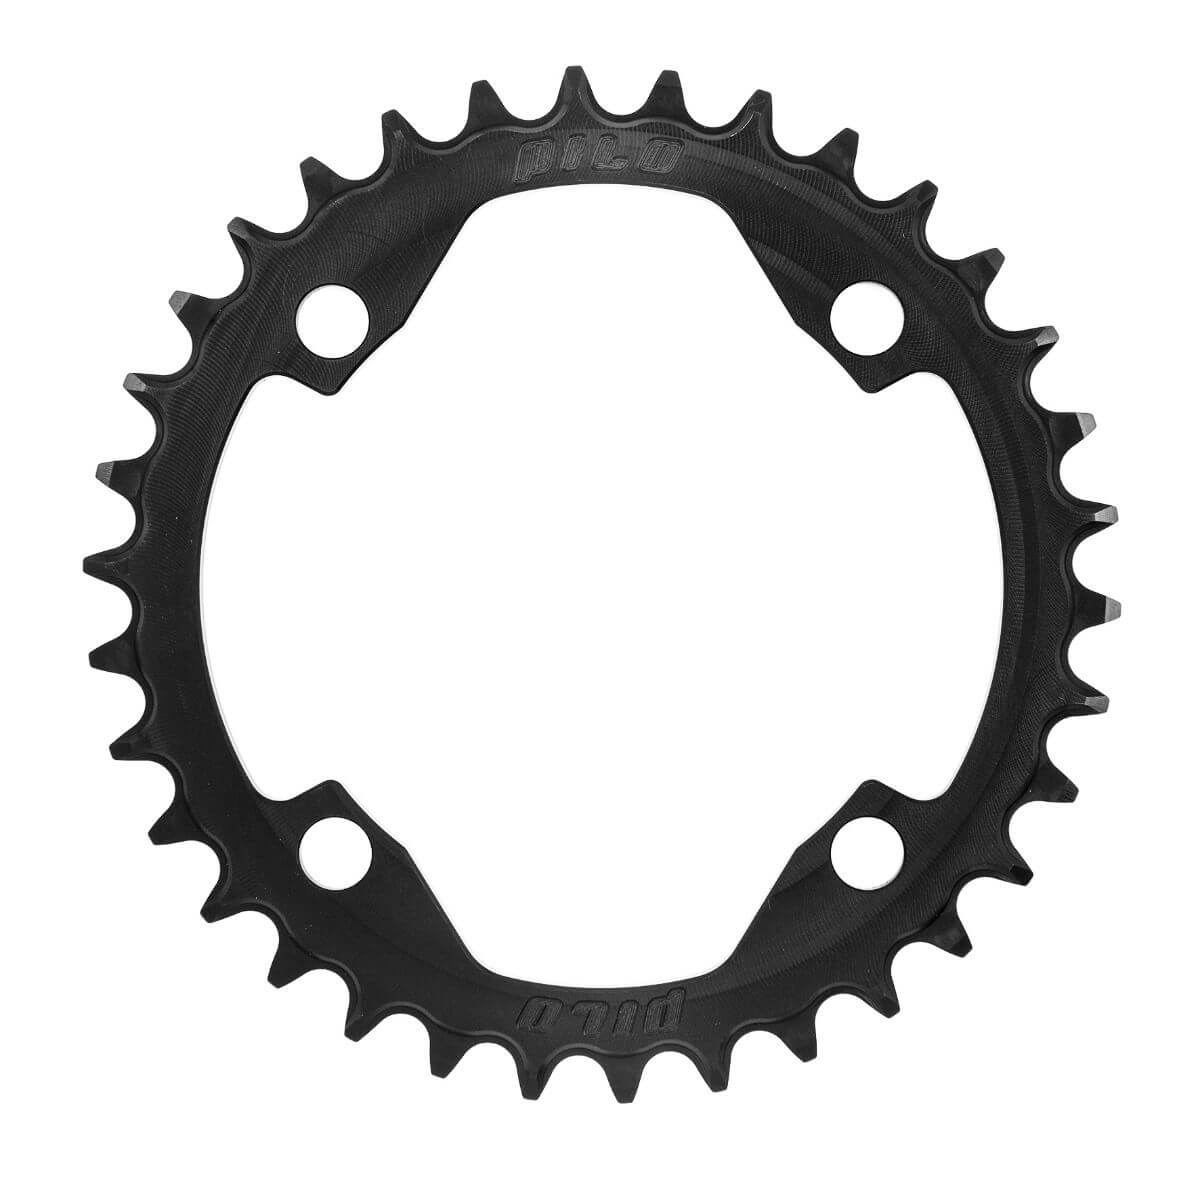 C46 Chainring Narrow Wide 36T Shimano 104 BCD